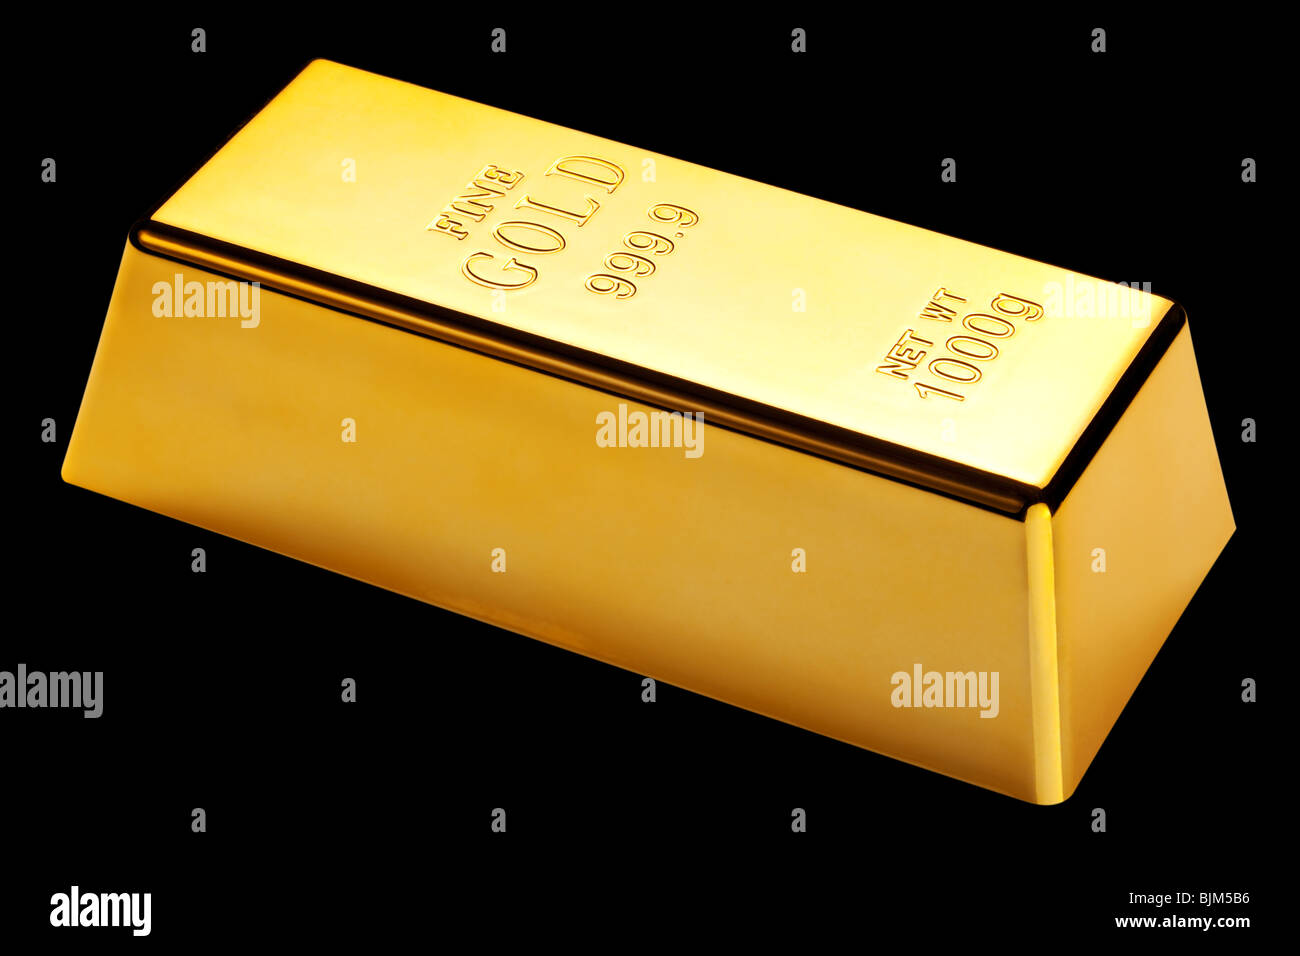 Photo of a 1kg gold bar isolated on a black background - Stock Image